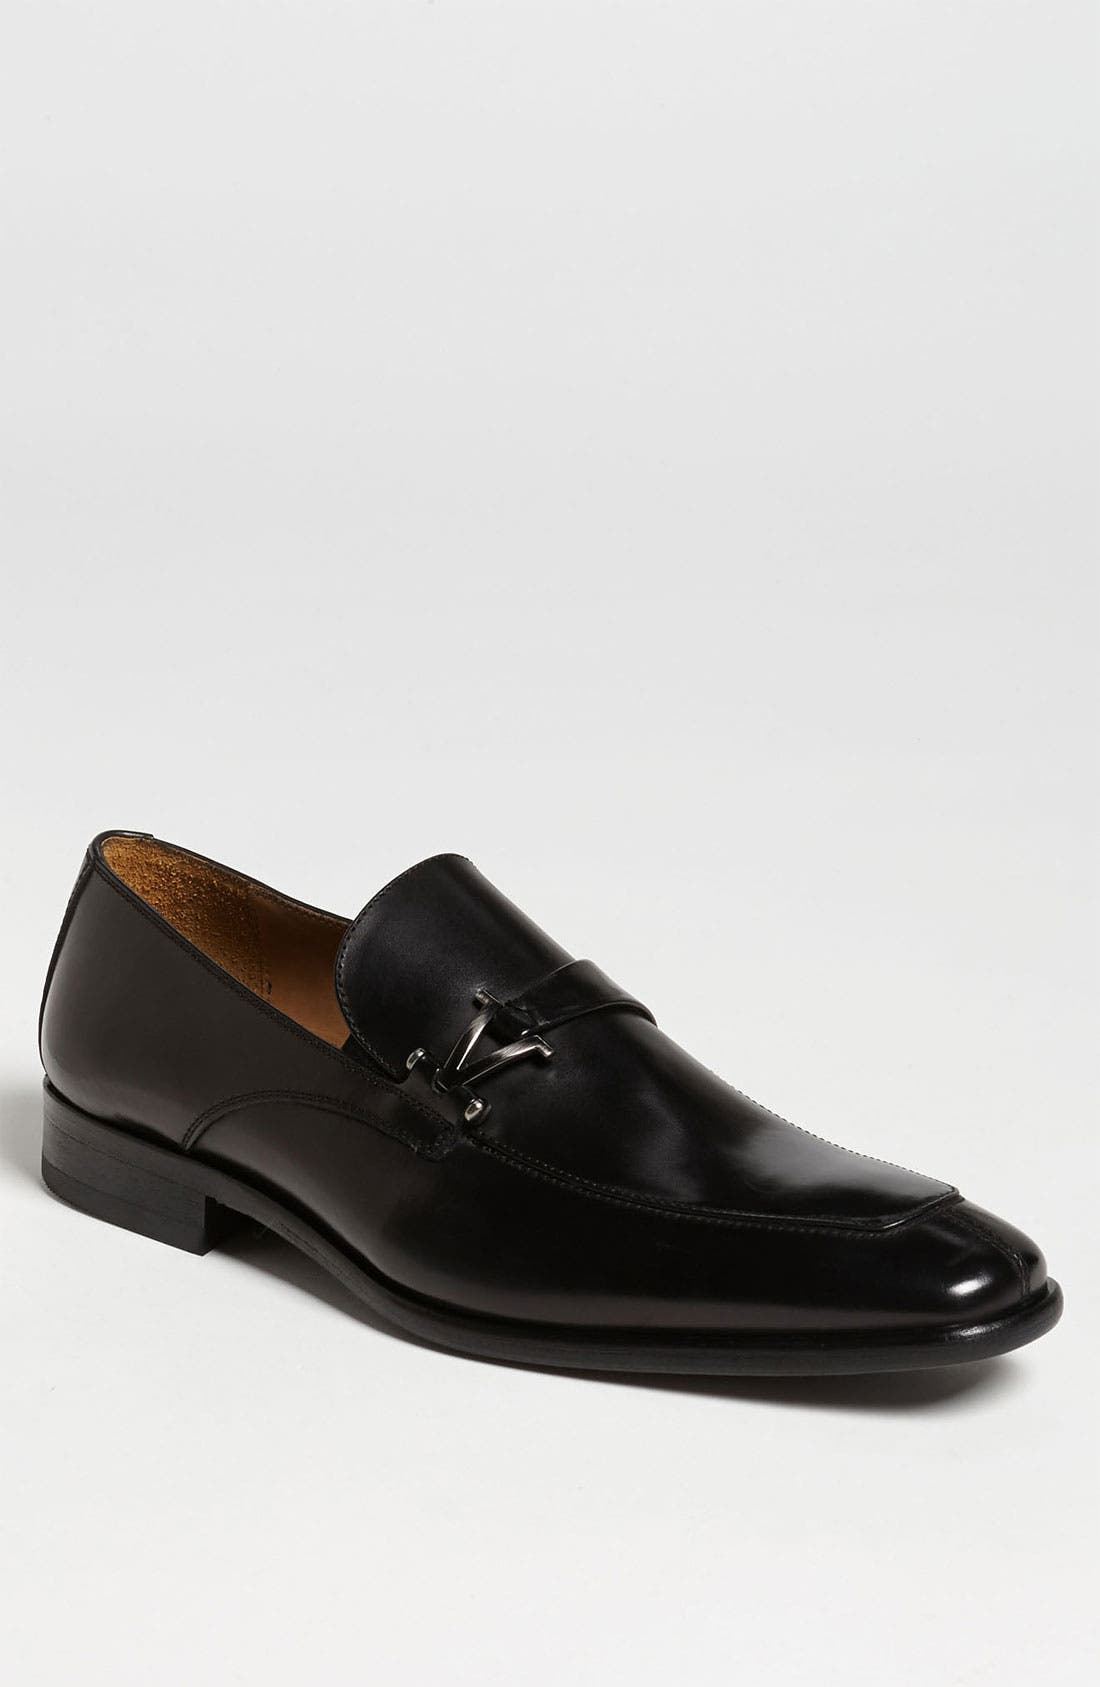 Alternate Image 1 Selected - Vince Camuto 'Gavino' Bit Loafer